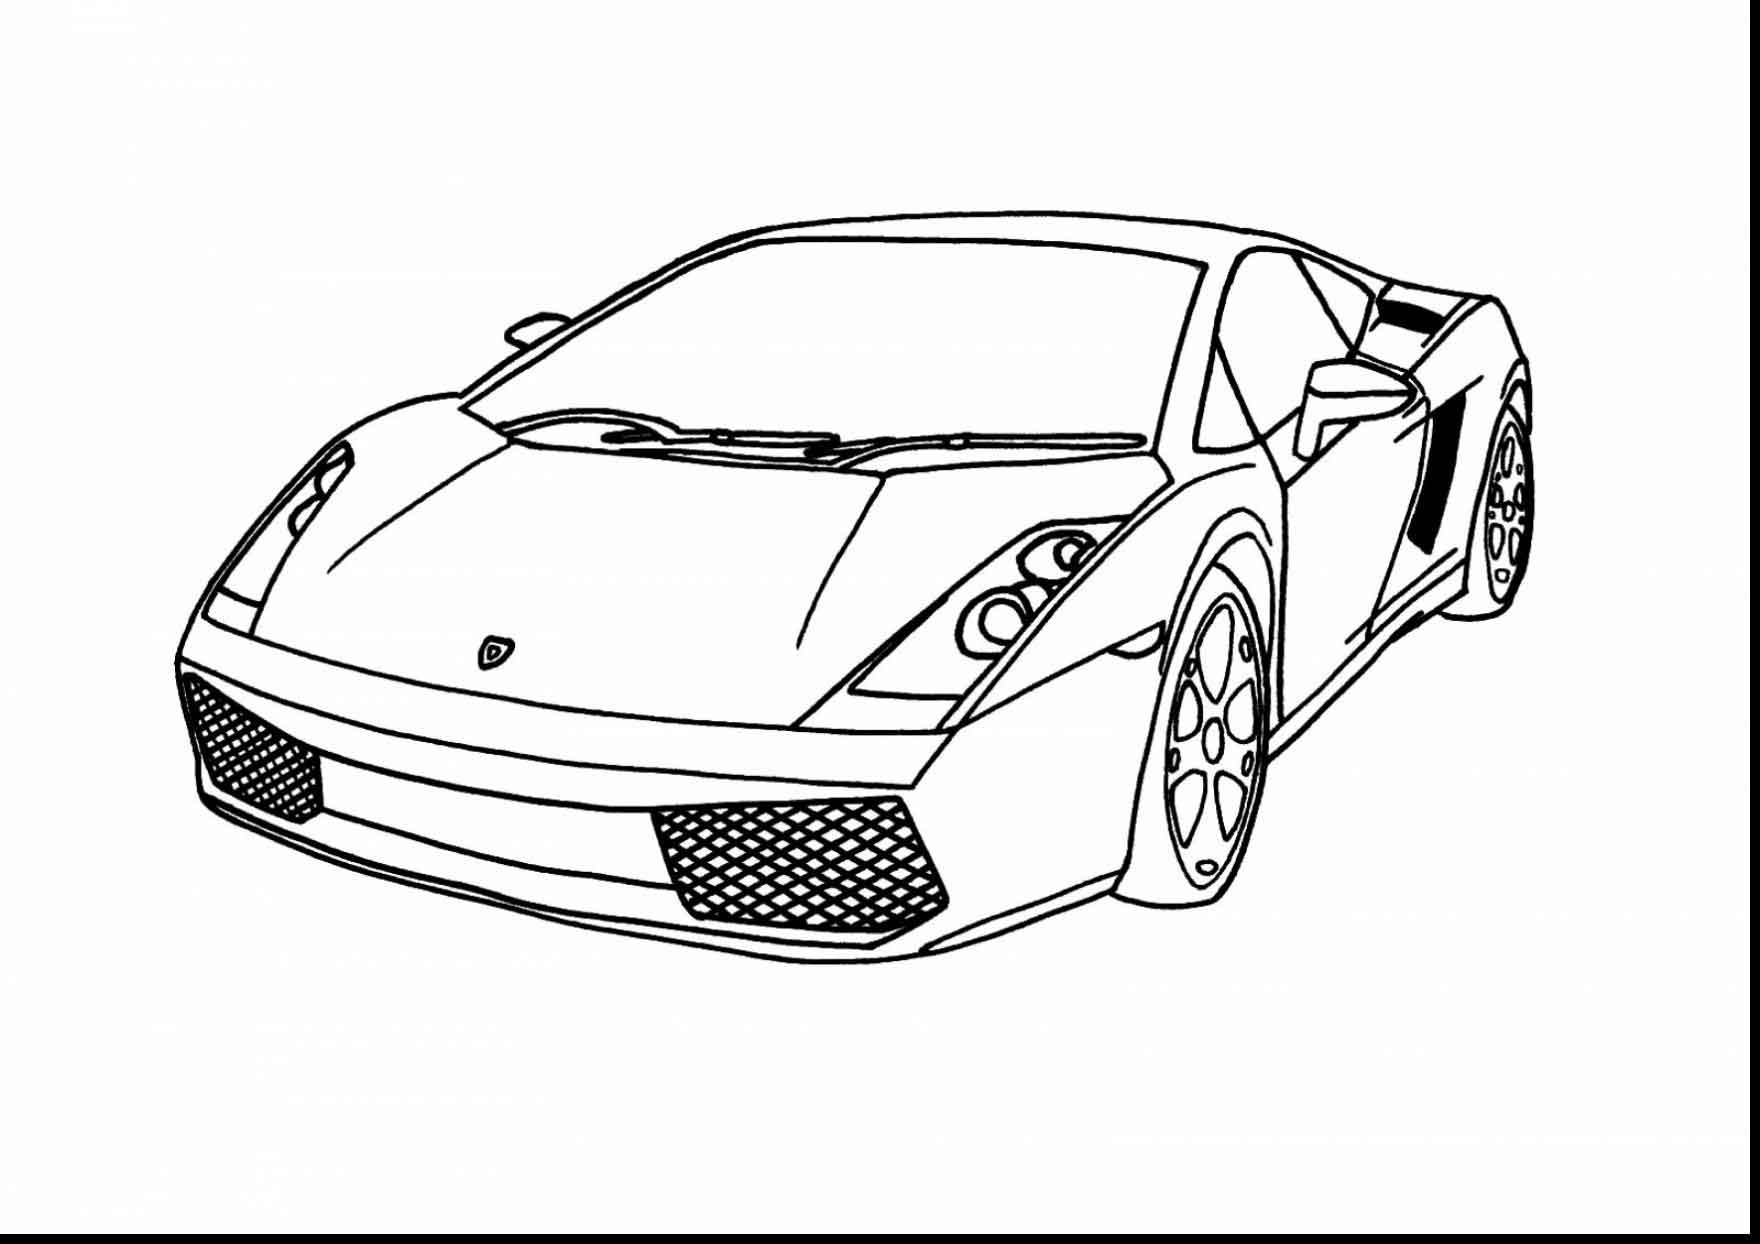 printable car coloring pages car coloring pages free download printable car pages coloring